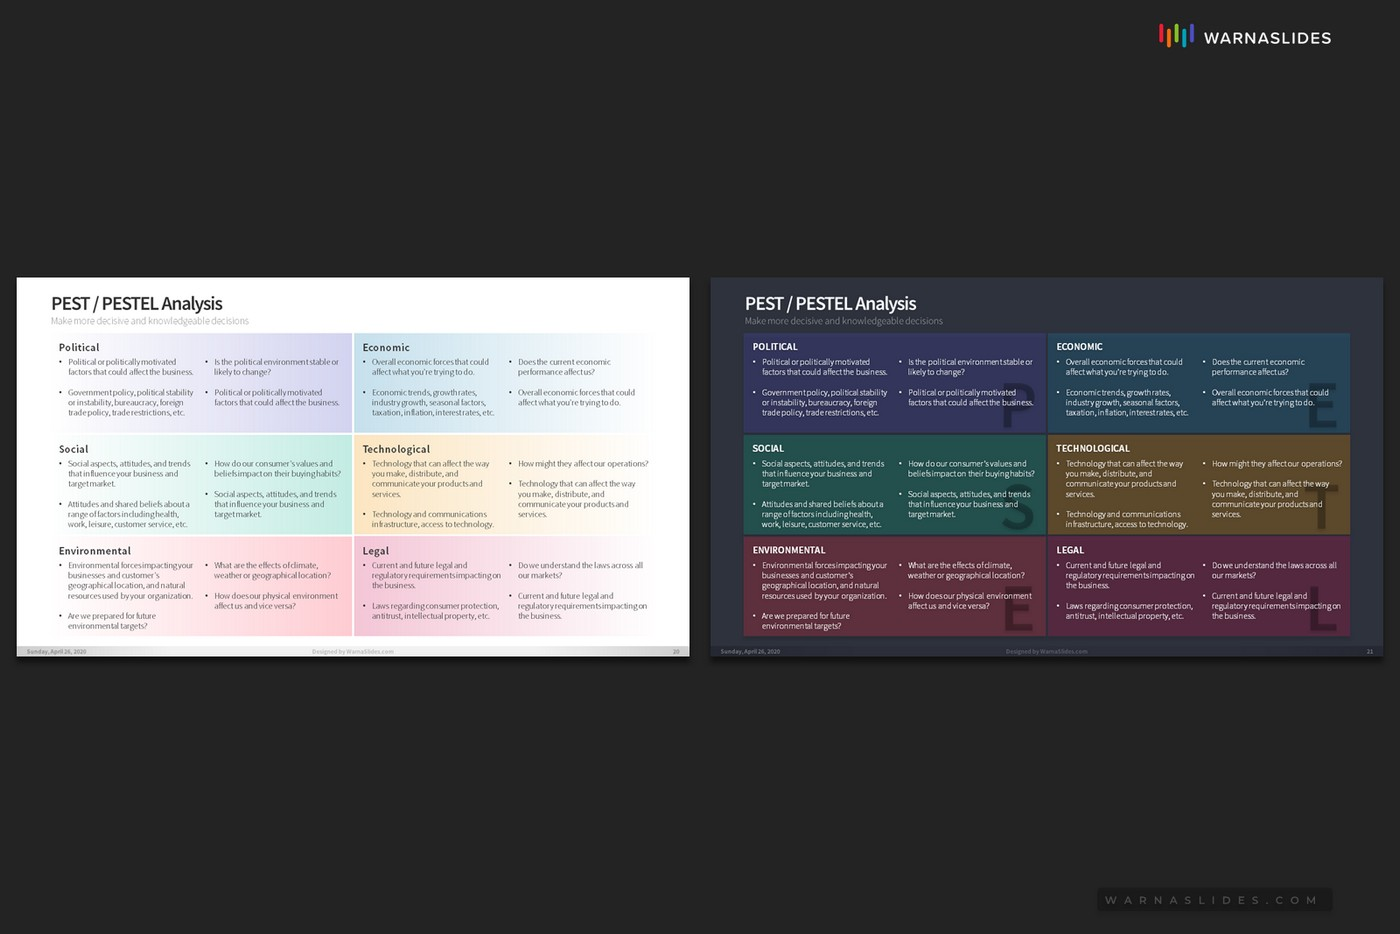 PEST-PESTEL-PESTLE-Analysis-Diagram-PowerPoint-Template-for-Business-Pitch-Deck-Professional-Creative-PowerPoint-Icons-012